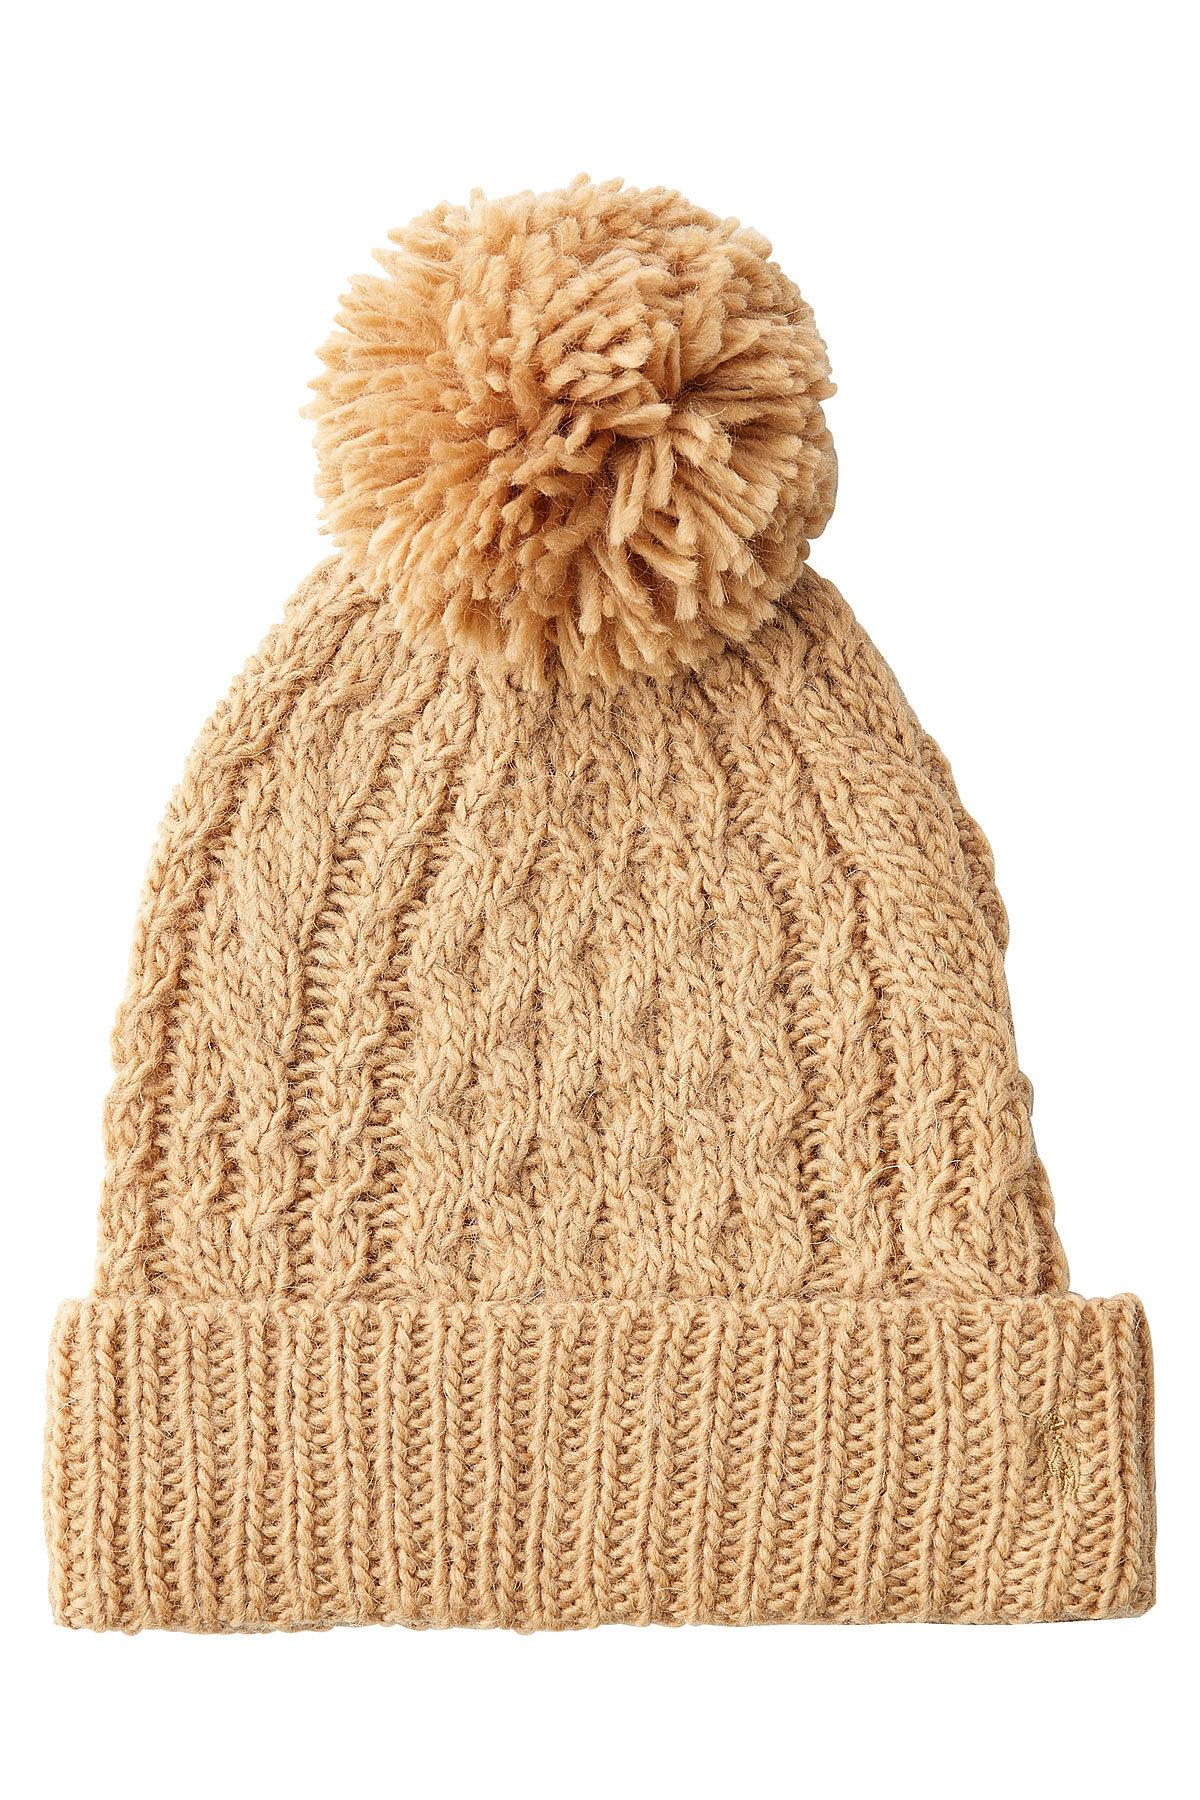 e2a303a4 Polo Ralph Lauren Natural Hat With Wool And Alpaca